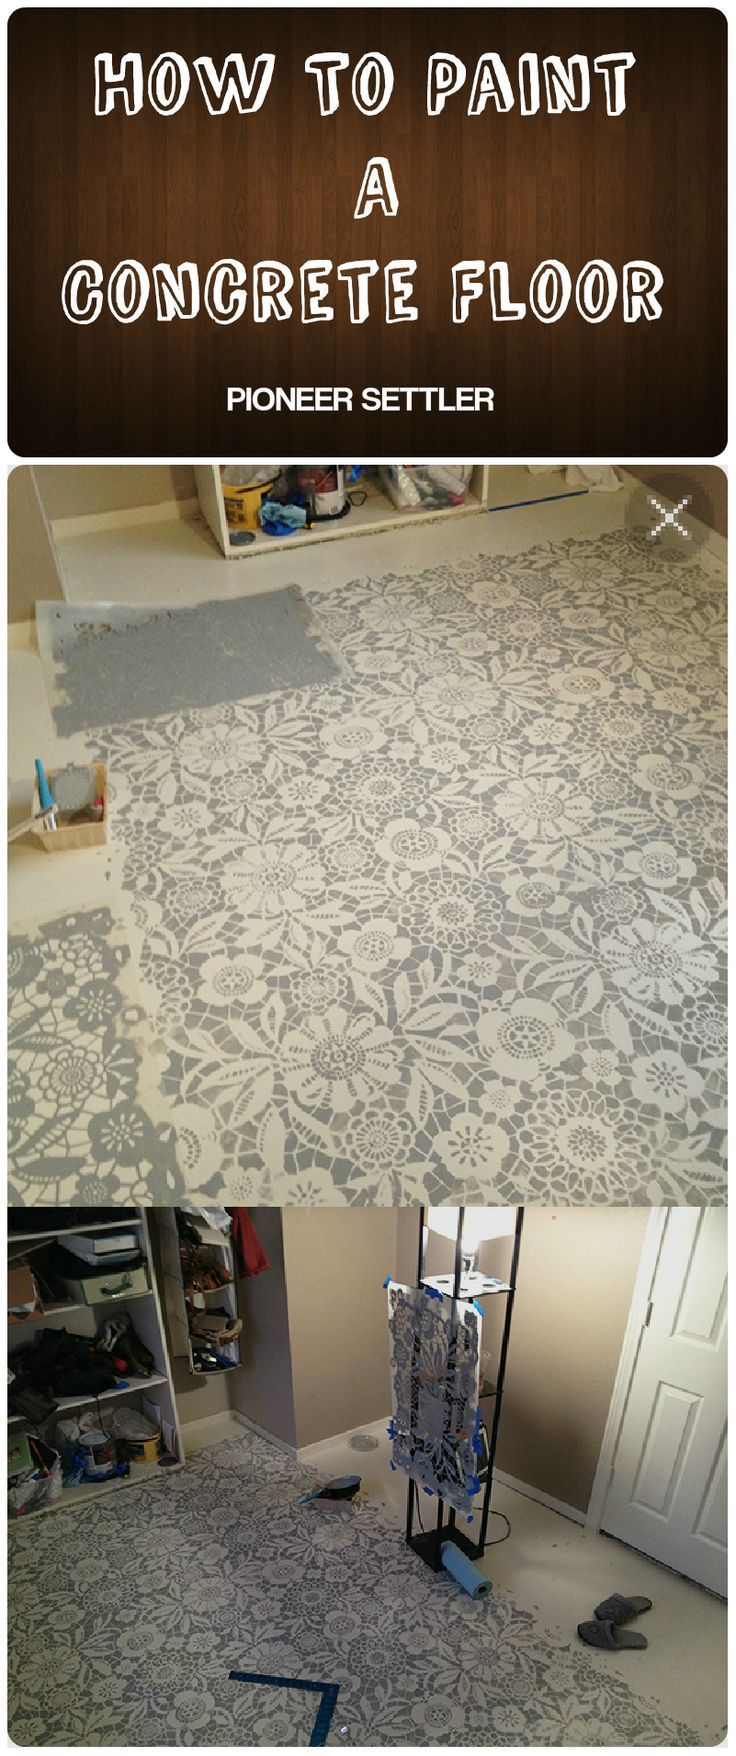 How To Paint A Concrete Floor | Seal and improve the look and performance of the floor by this step-by-step tutorial + video tutorial. | Best Homesteading Tips, DIY Projects and Homemade Recipes #pioneersettler | pioneersettler.com